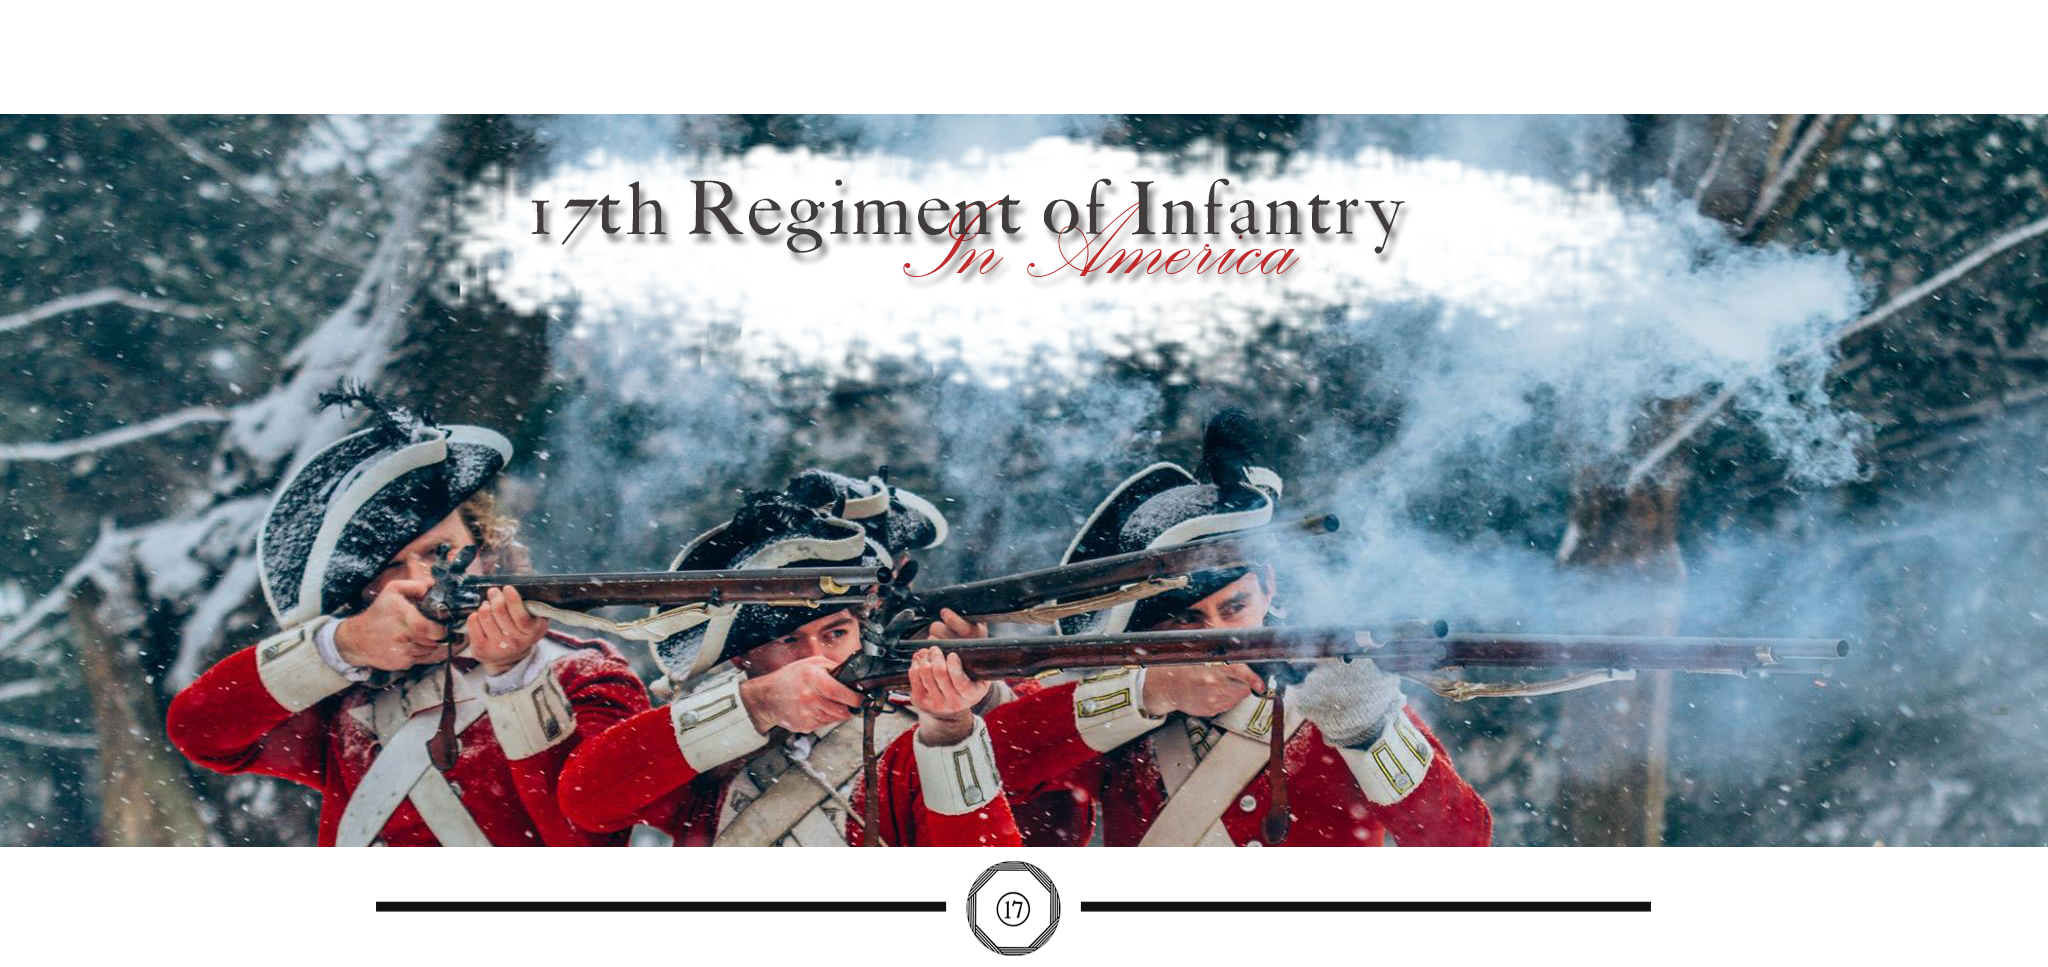 17th Regiment